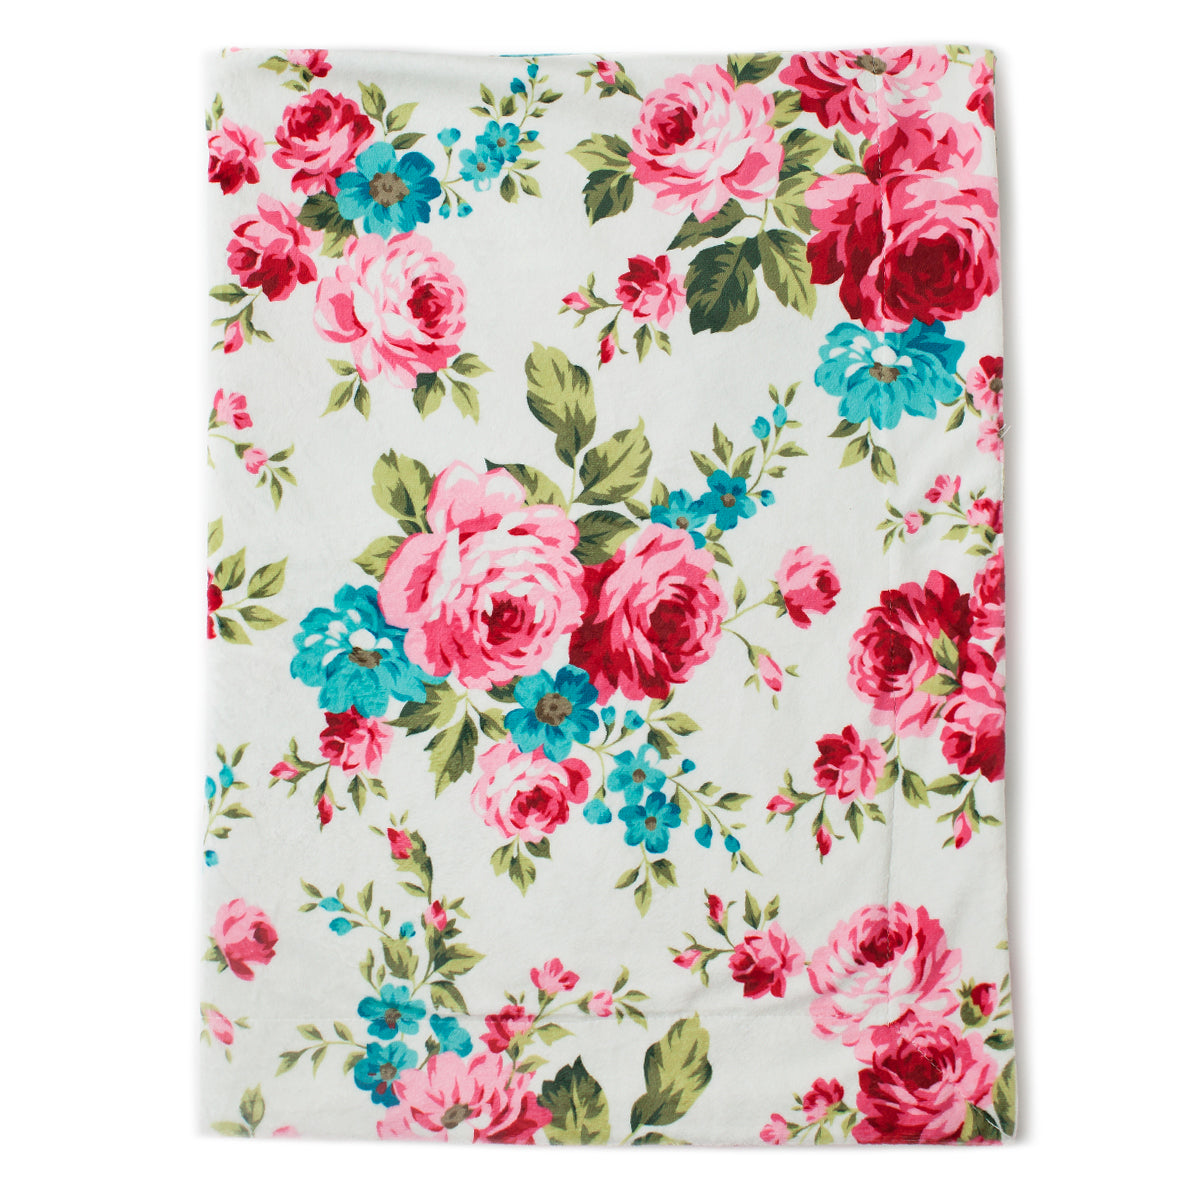 Minky Baby Blanket 30 Quot X 40 Quot White Floral Pattern Kids